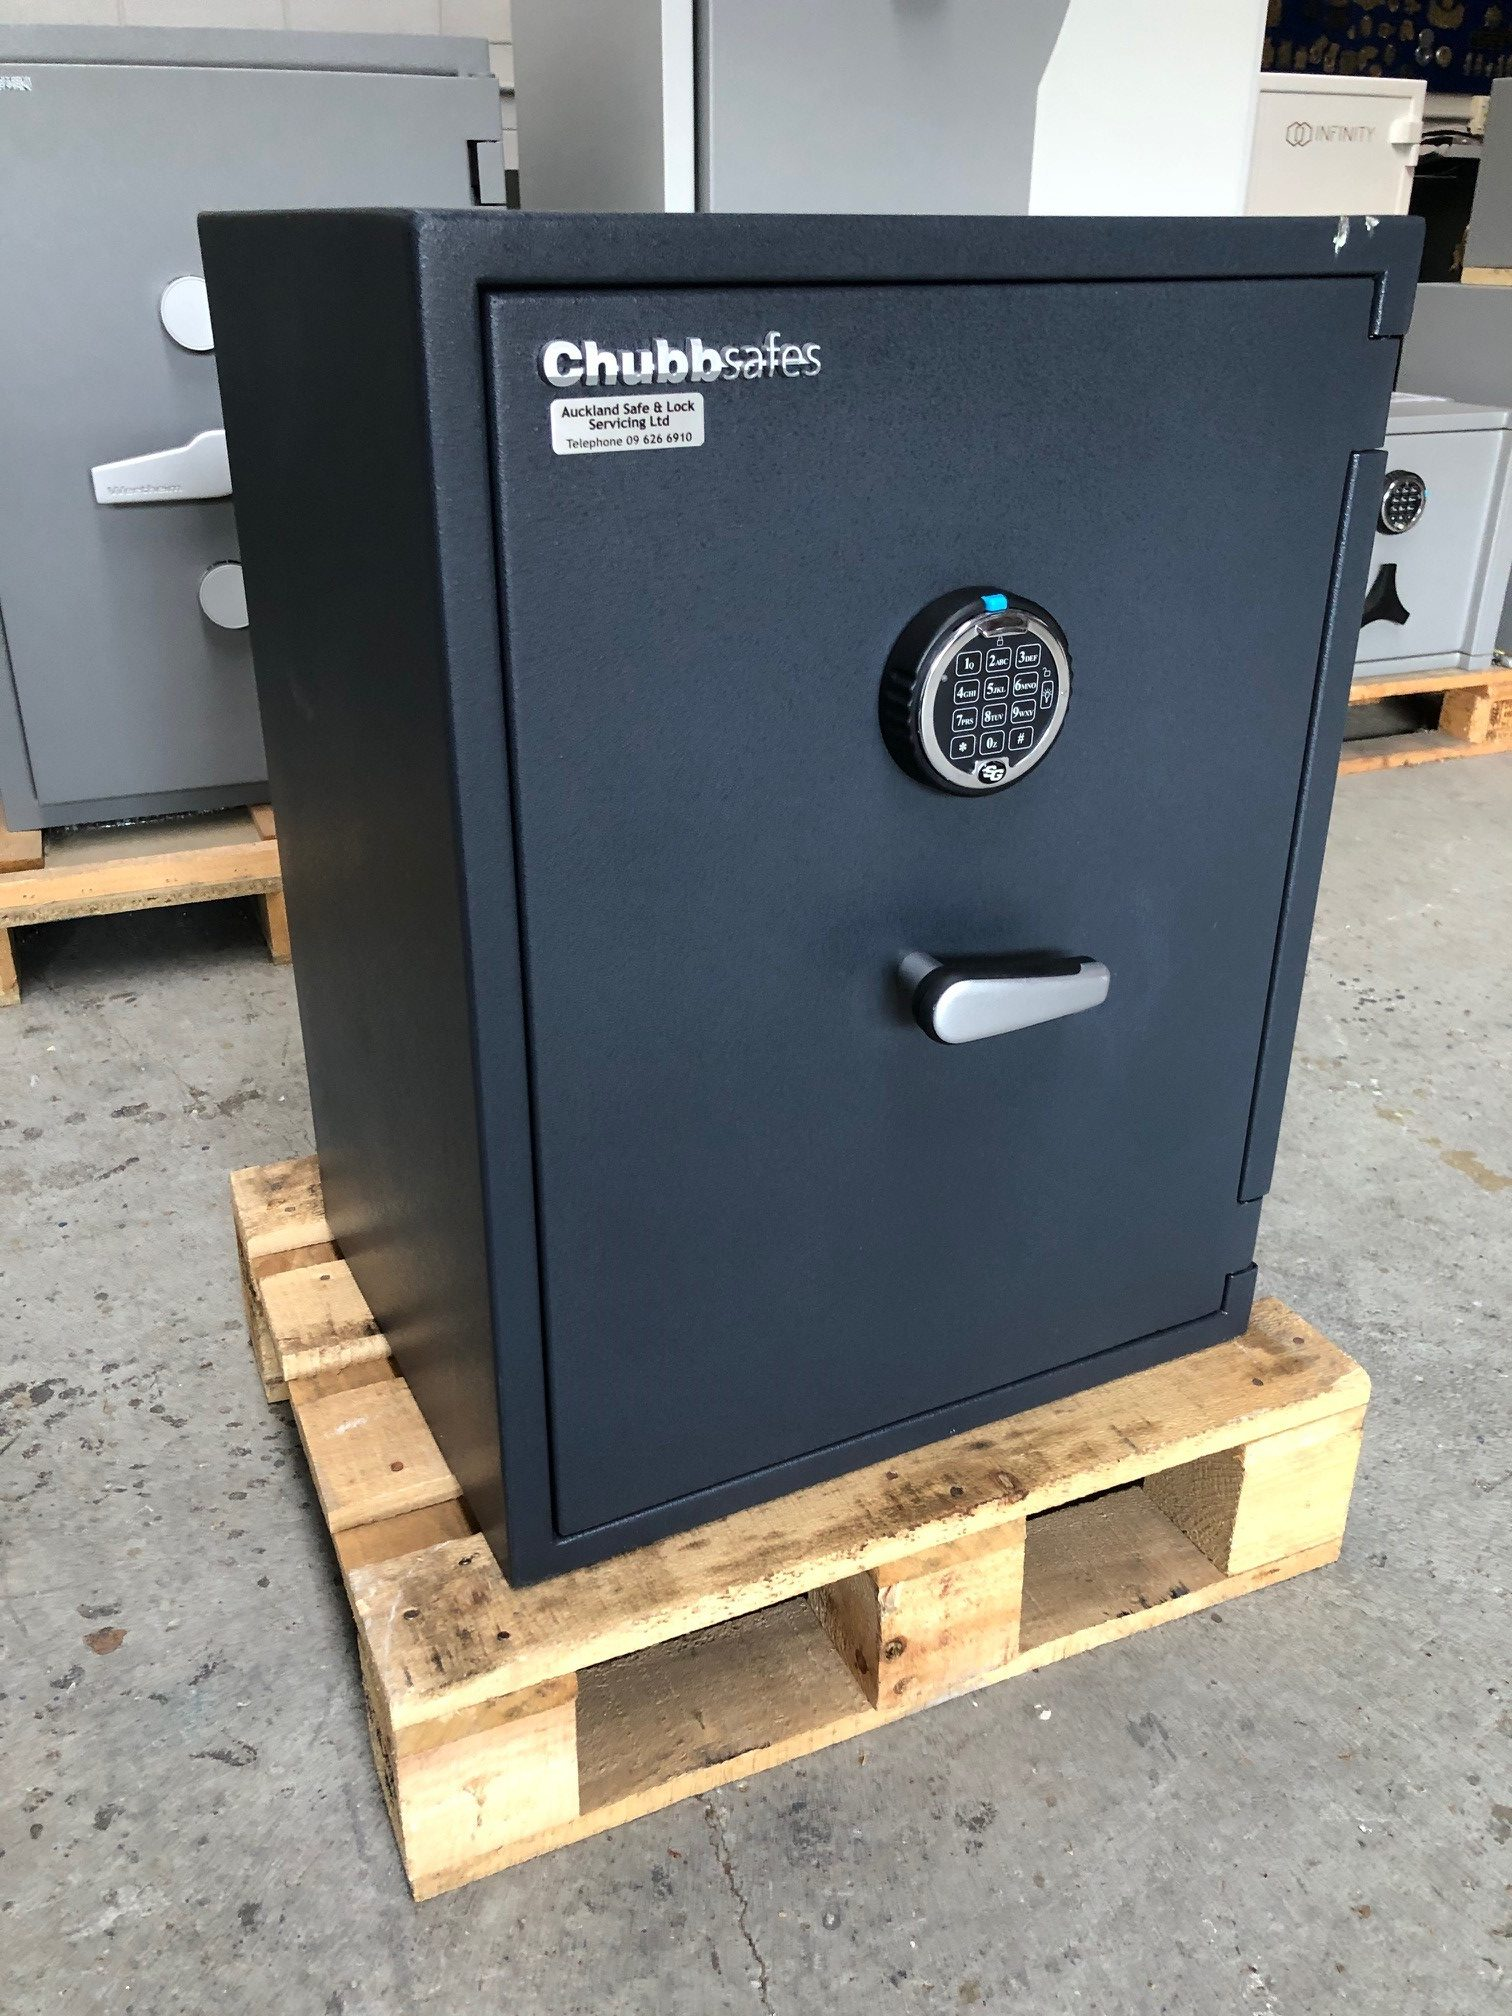 Chubbsafes Sentaor M3 Safe Secondhand